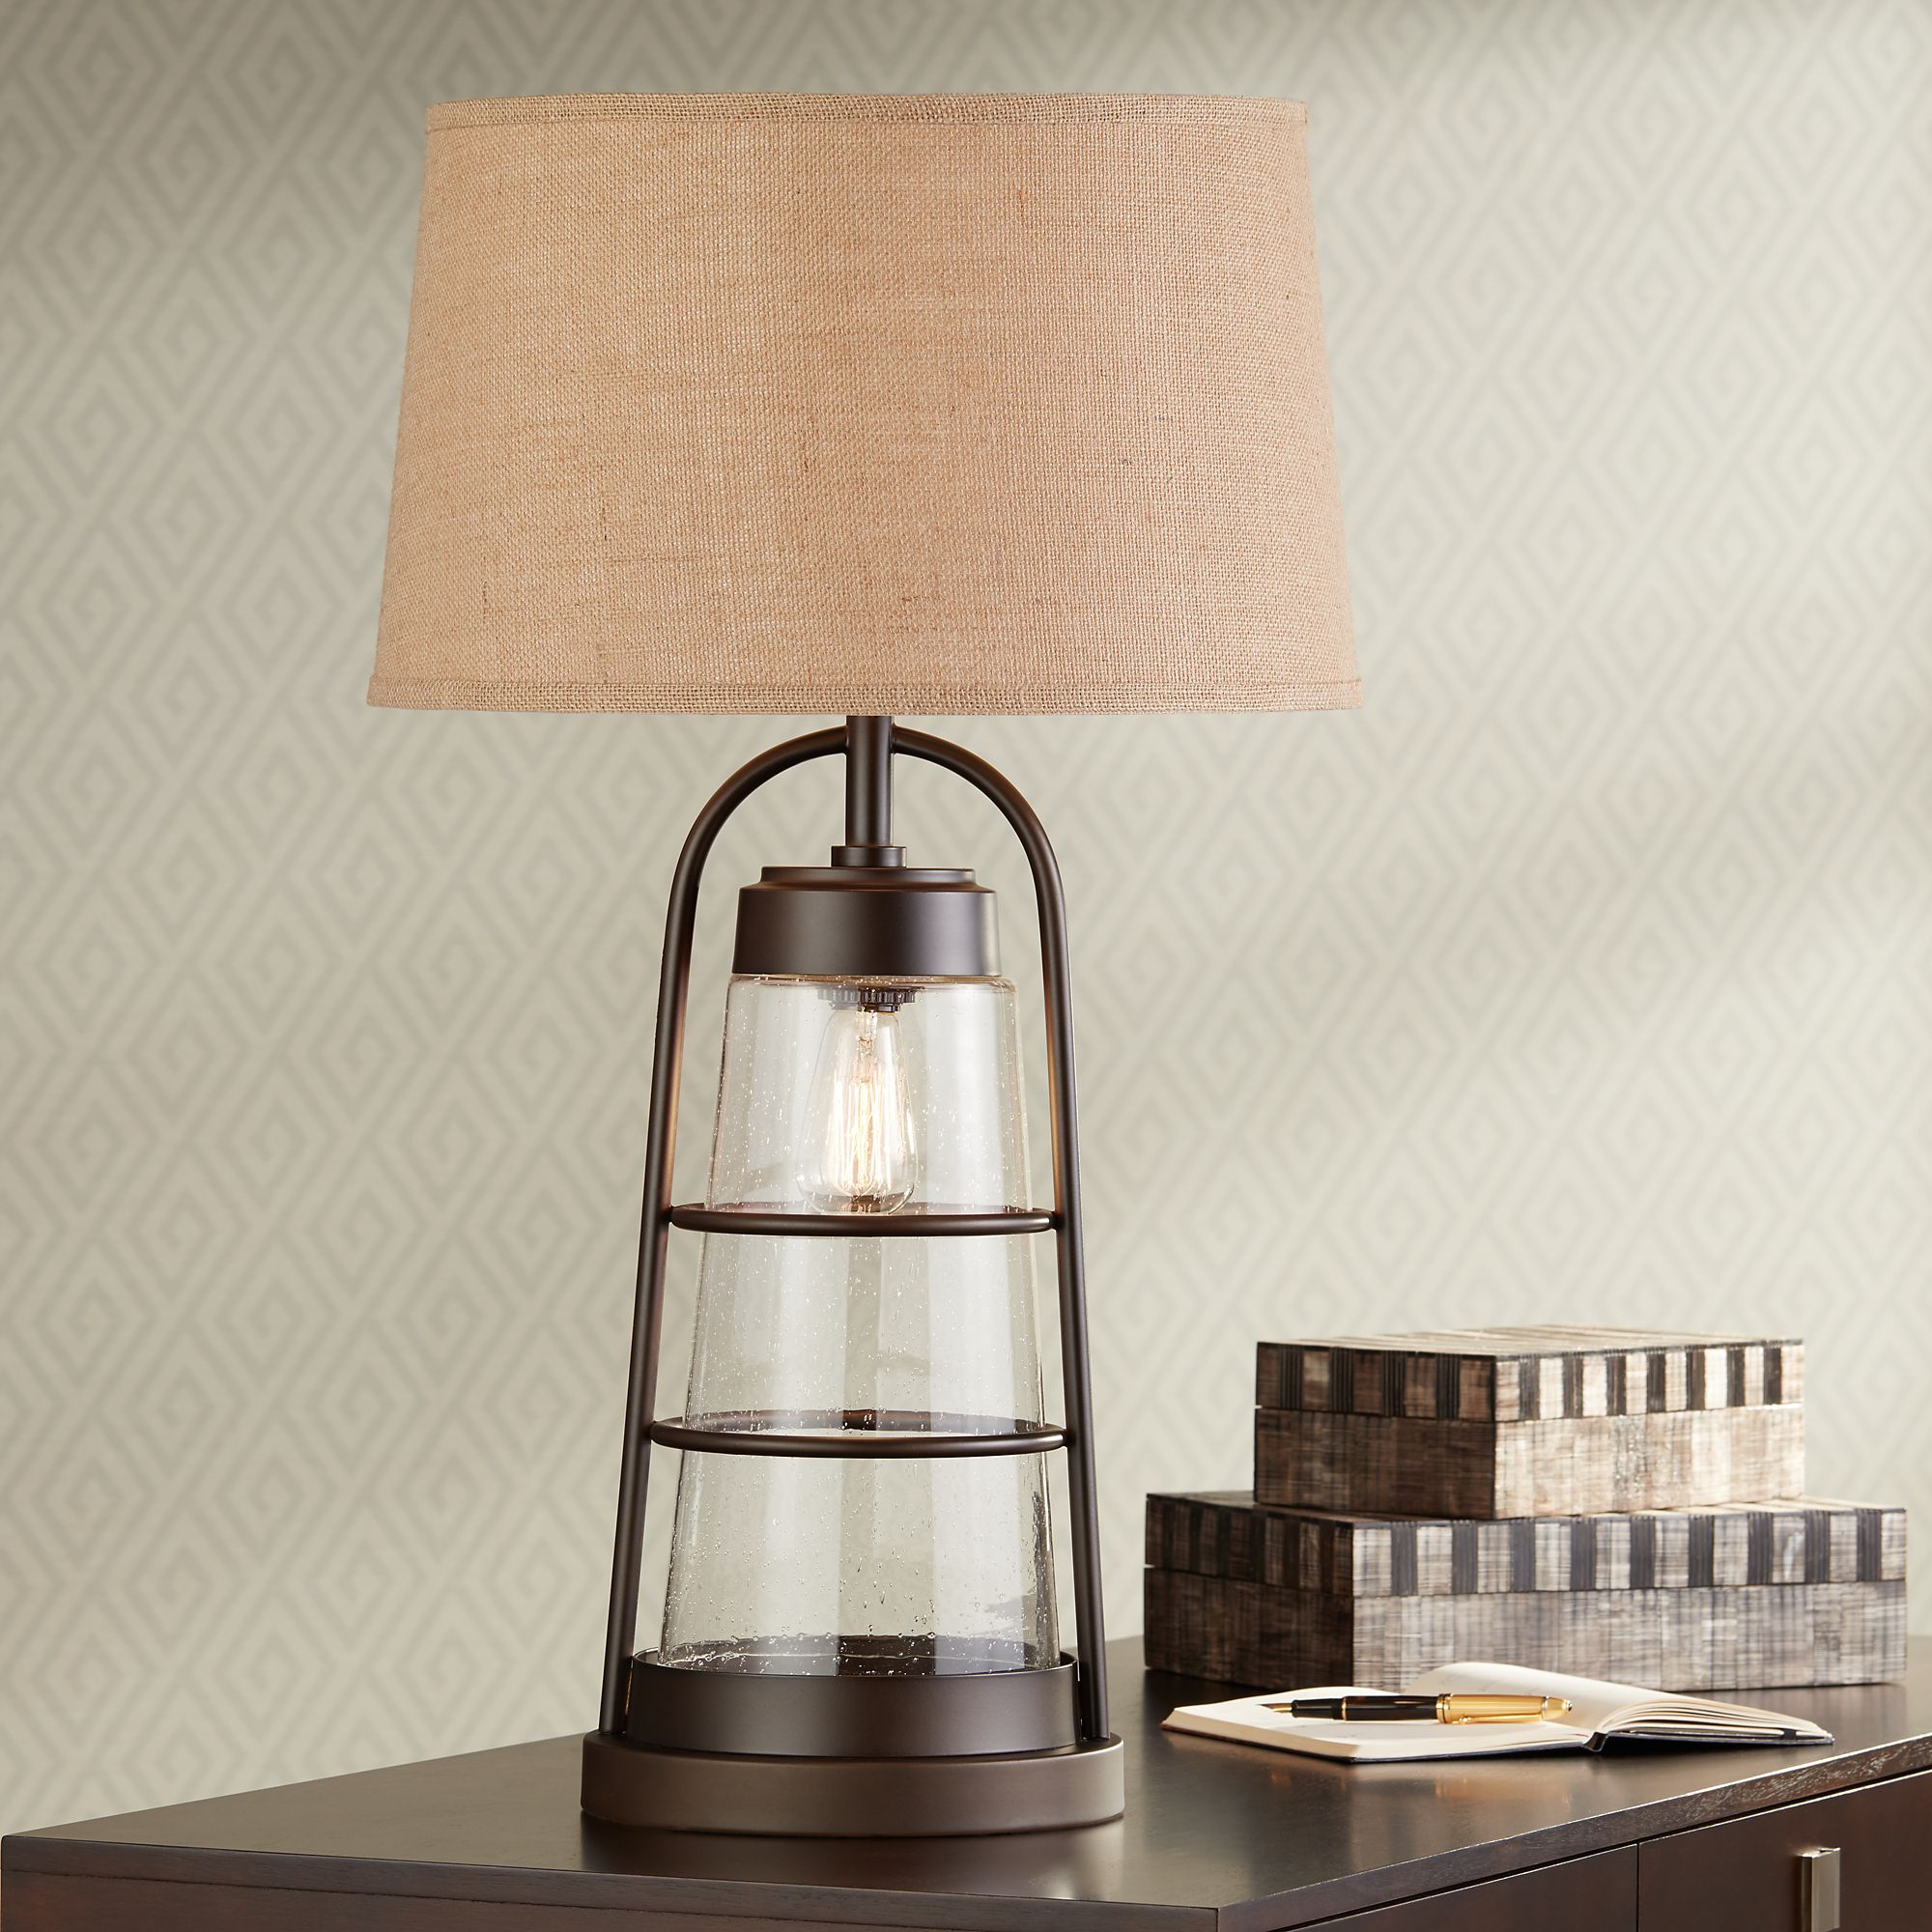 Franklin Iron Works Industrial Lantern Table Lamp With Night Light by Franklin Iron Works